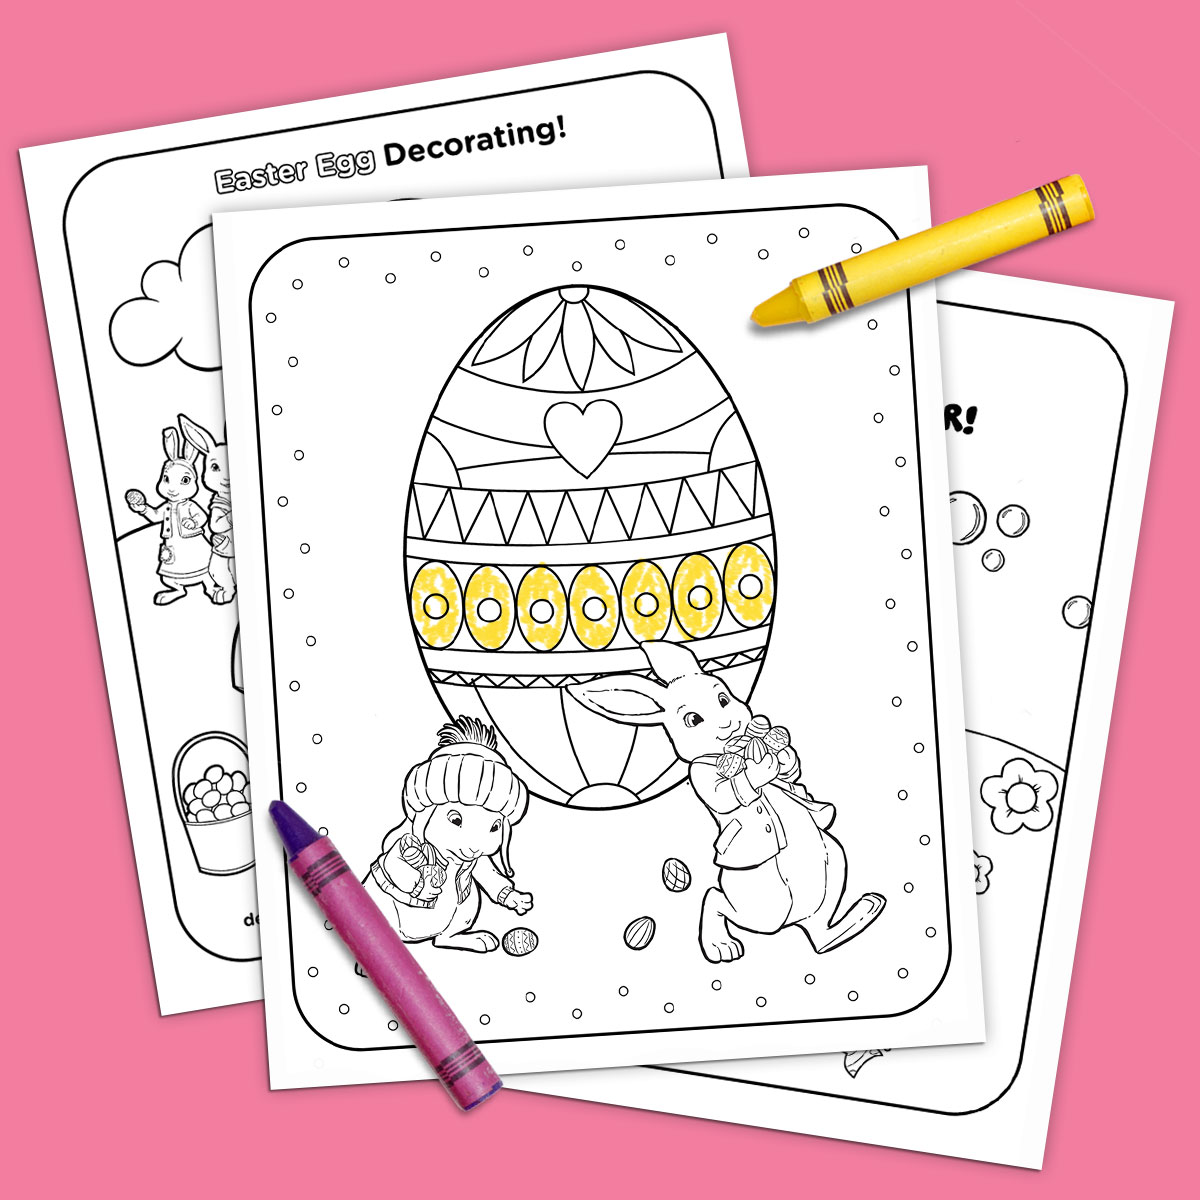 Nickelodeon Coloring Pages 90s Nickelodeon Coloring Pages New ... | 1200x1200